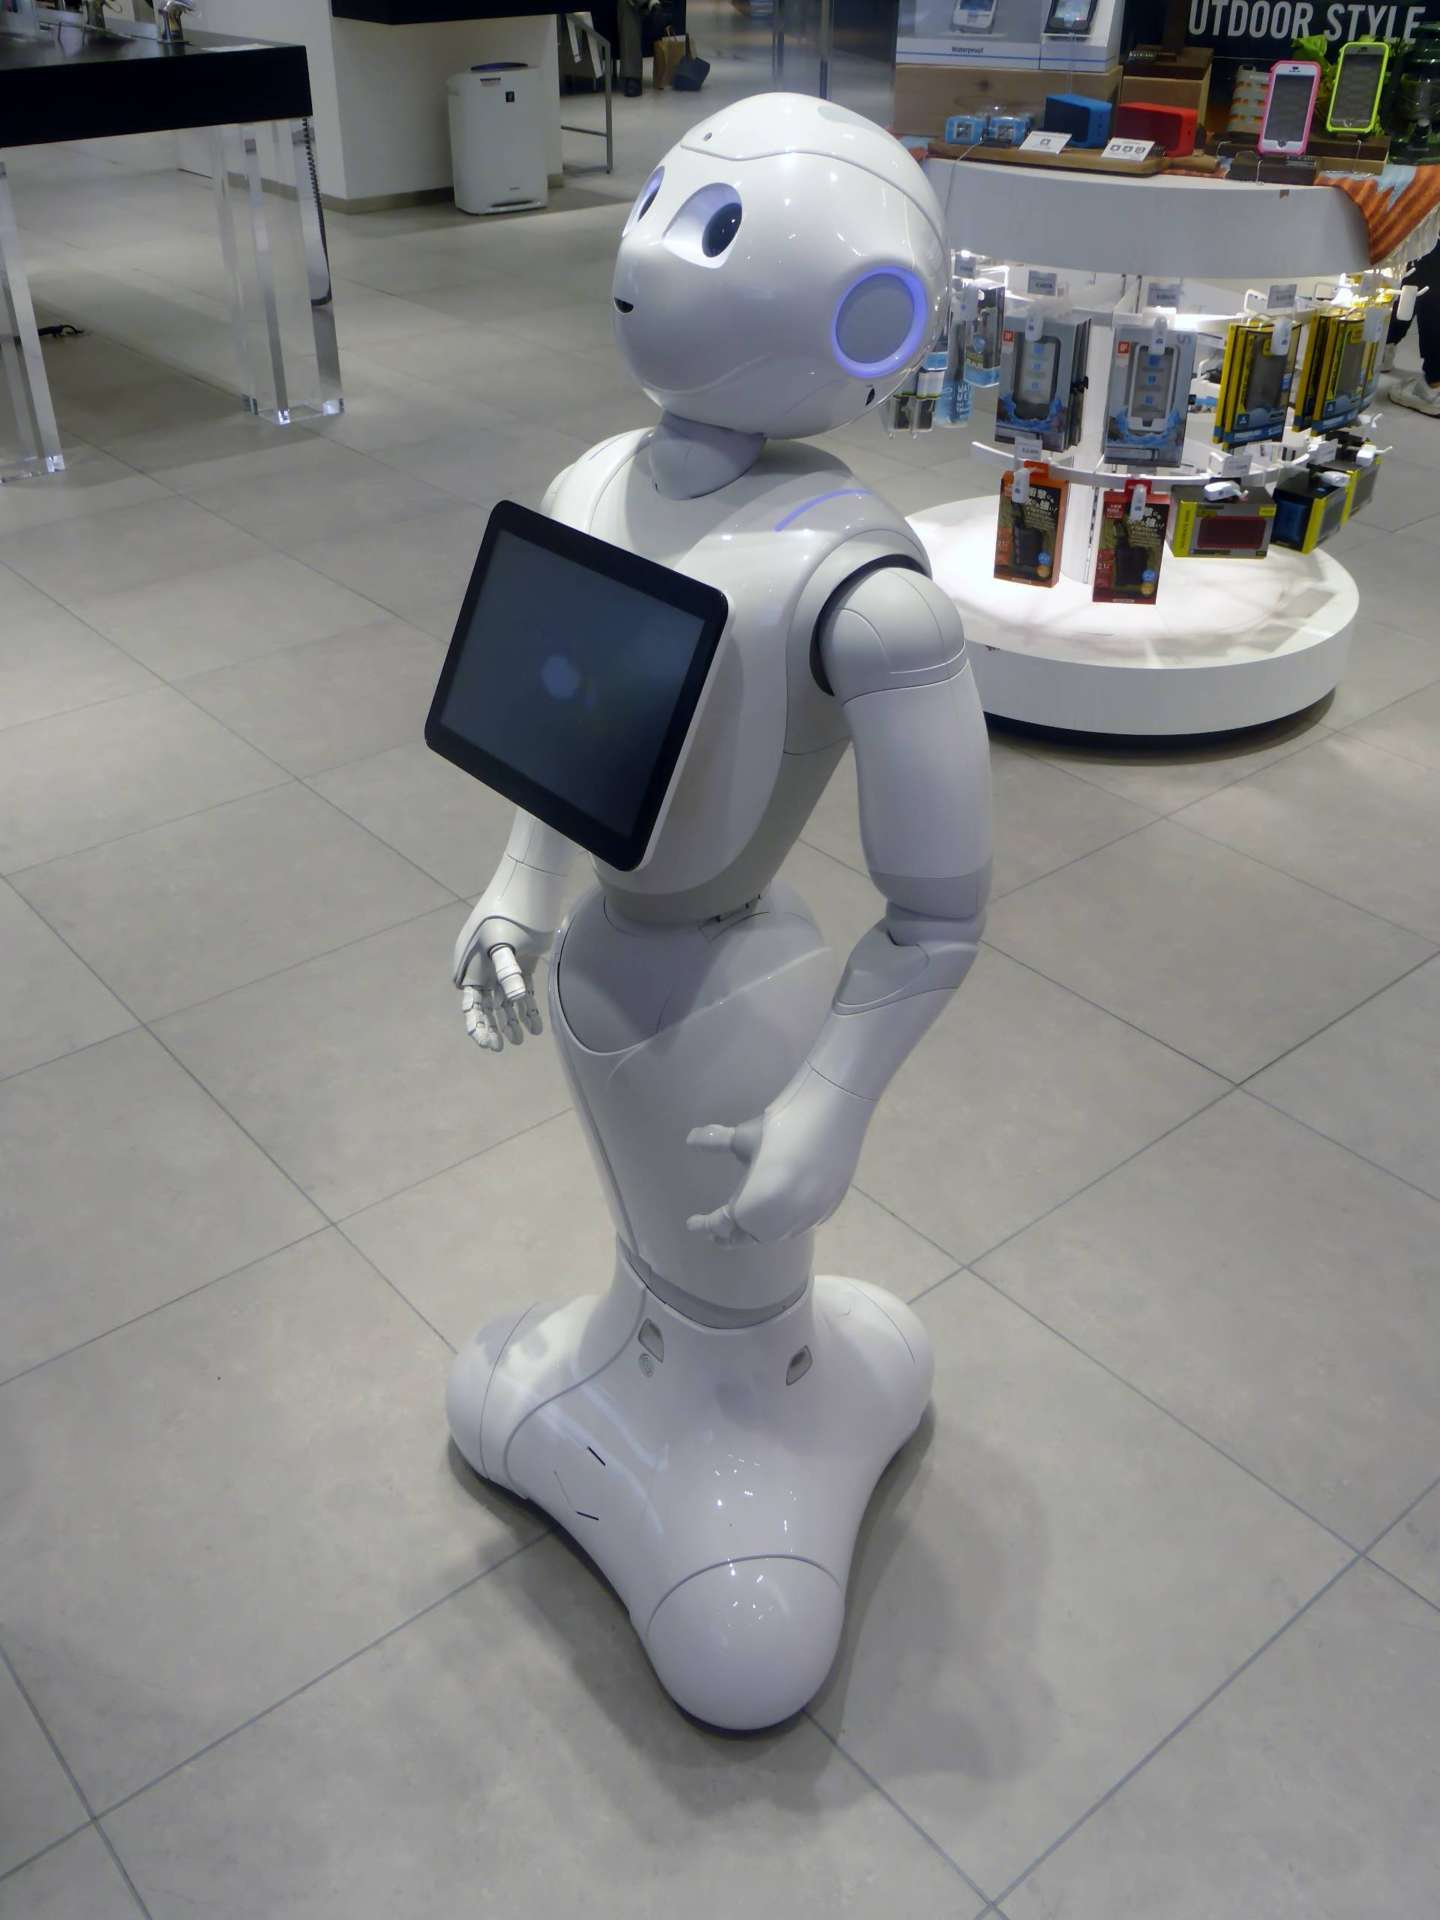 AMAZING ROBOTS IN THE WORLD